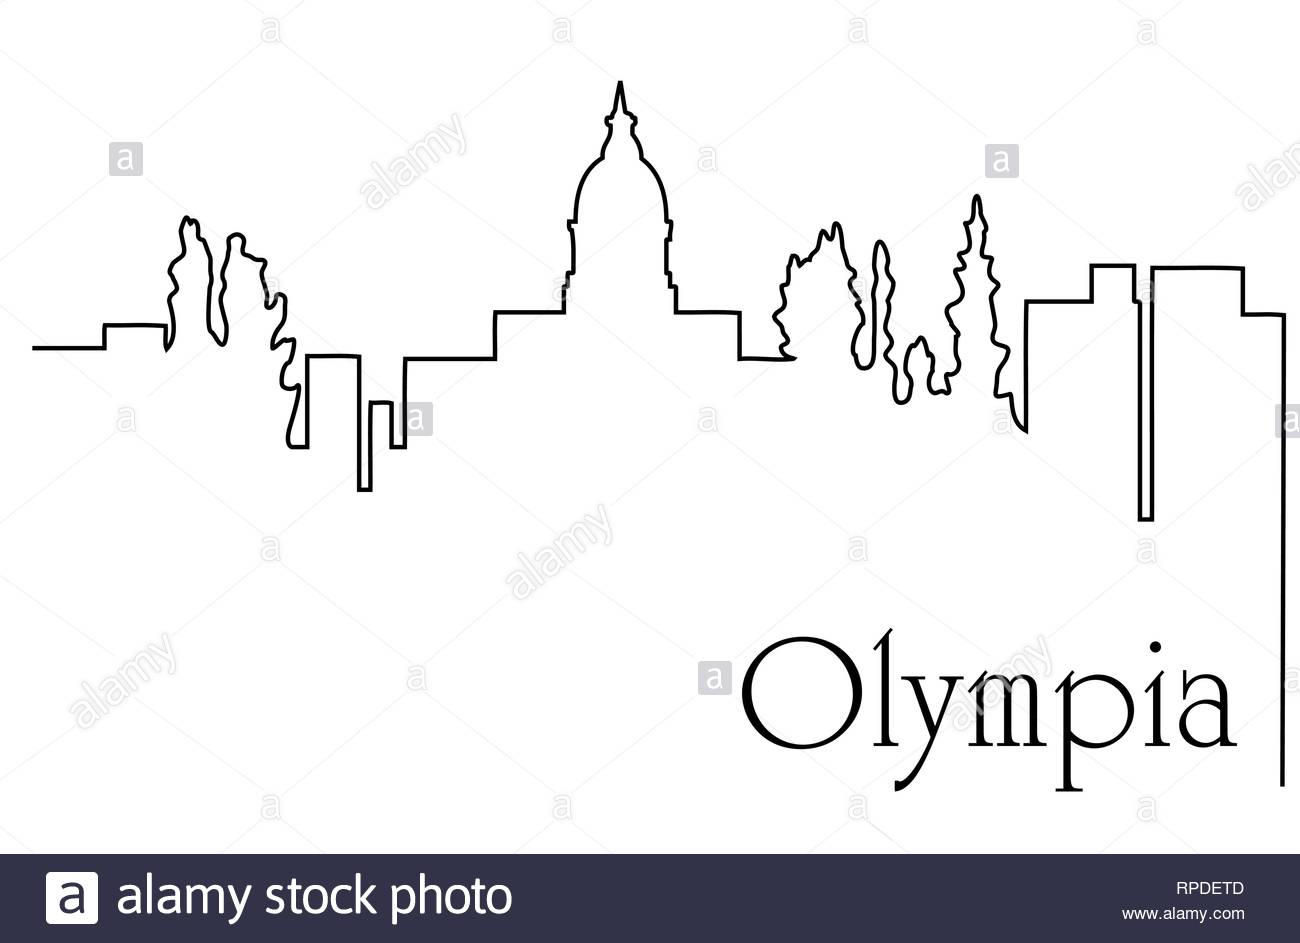 Olympia city one line drawing abstract background with cityscape 1300x943